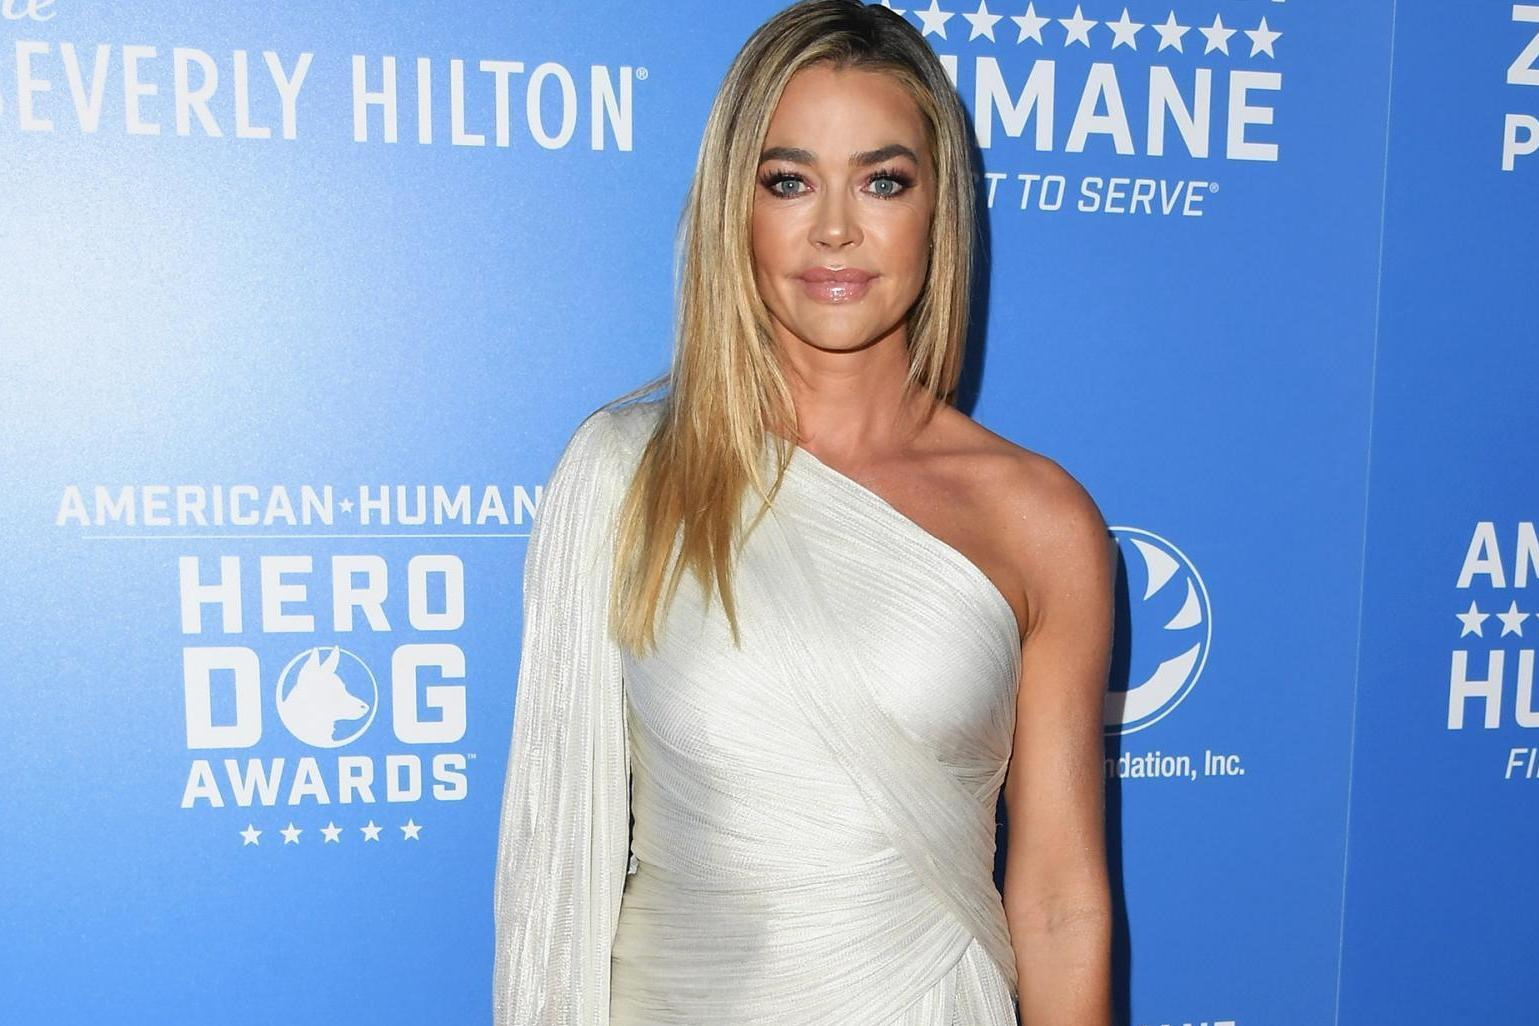 Denise Richards: Real Housewives star thanks viewers for spotting thyroid problem during show